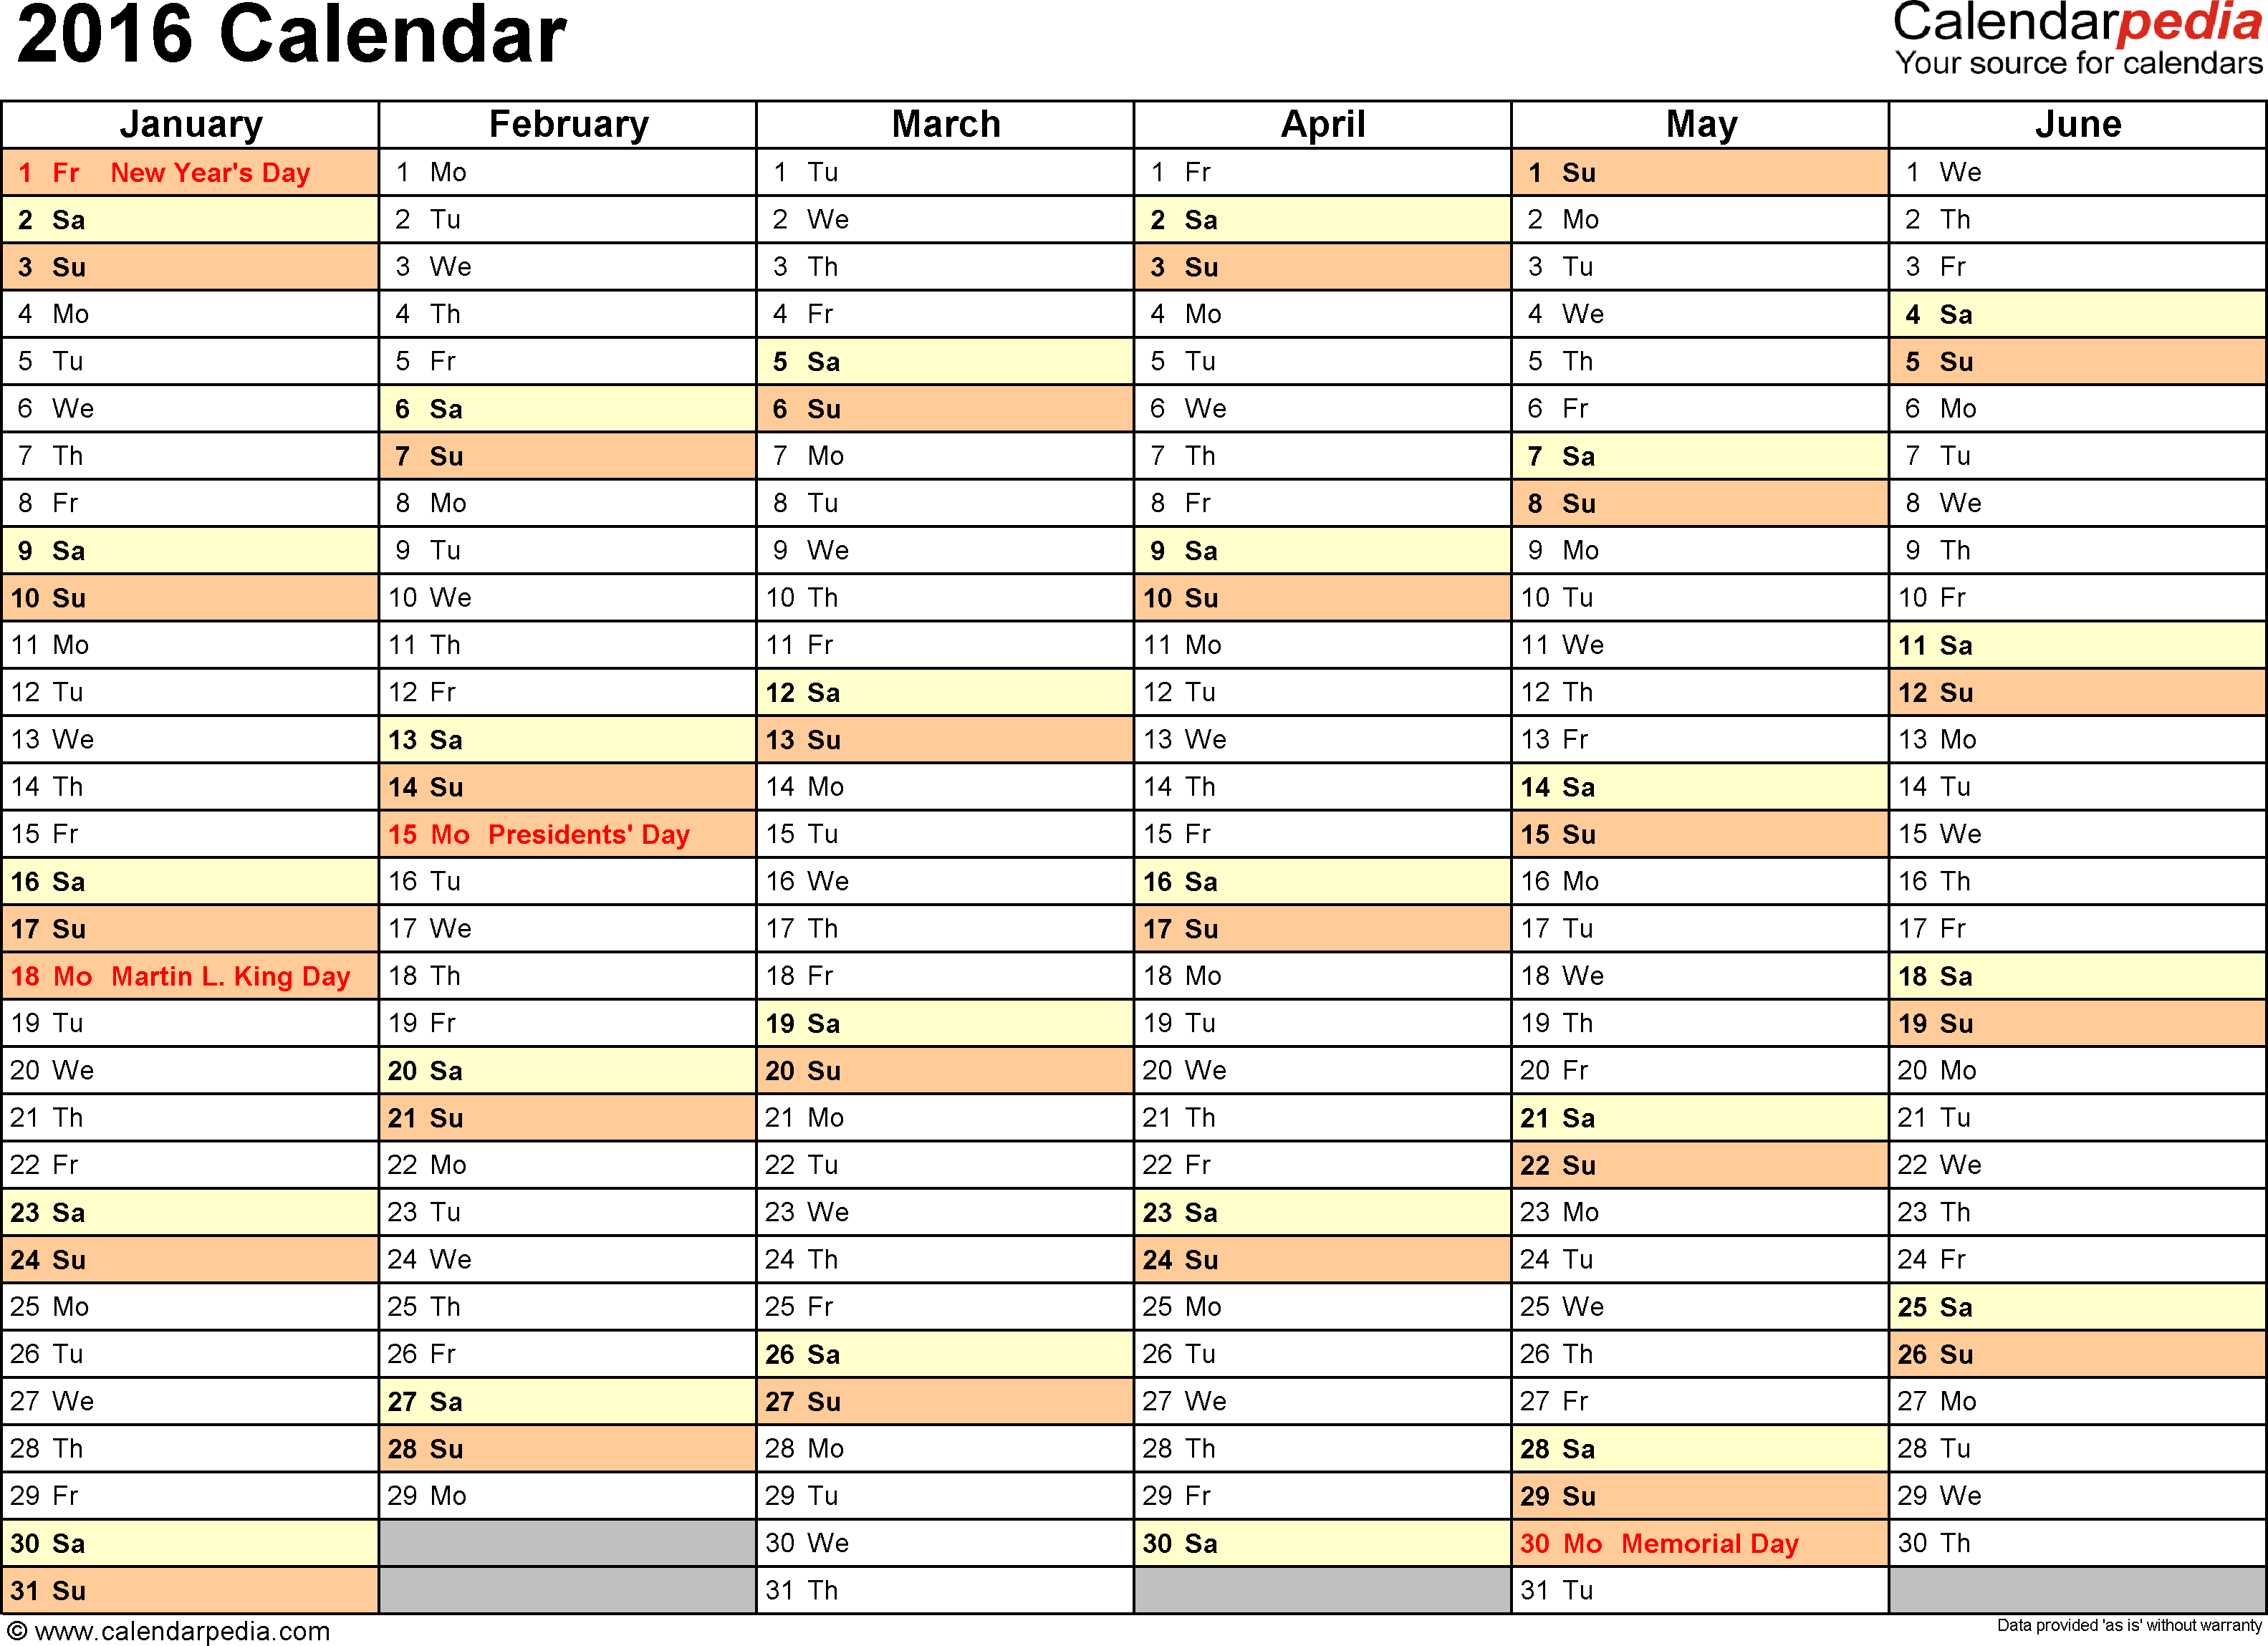 Ediblewildsus  Outstanding  Calendar  Download  Free Printable Excel Templates Xls With Extraordinary Template   Calendar For Excel Months Horizontally  Pages Landscape Orientation With Endearing Excel Subtract Days Also Adding And Subtracting In Excel In Addition Calculate Function In Excel And How To Create Bar Graph In Excel  As Well As Remove All Blank Rows Excel Additionally Subtraction Equation In Excel From Calendarpediacom With Ediblewildsus  Extraordinary  Calendar  Download  Free Printable Excel Templates Xls With Endearing Template   Calendar For Excel Months Horizontally  Pages Landscape Orientation And Outstanding Excel Subtract Days Also Adding And Subtracting In Excel In Addition Calculate Function In Excel From Calendarpediacom